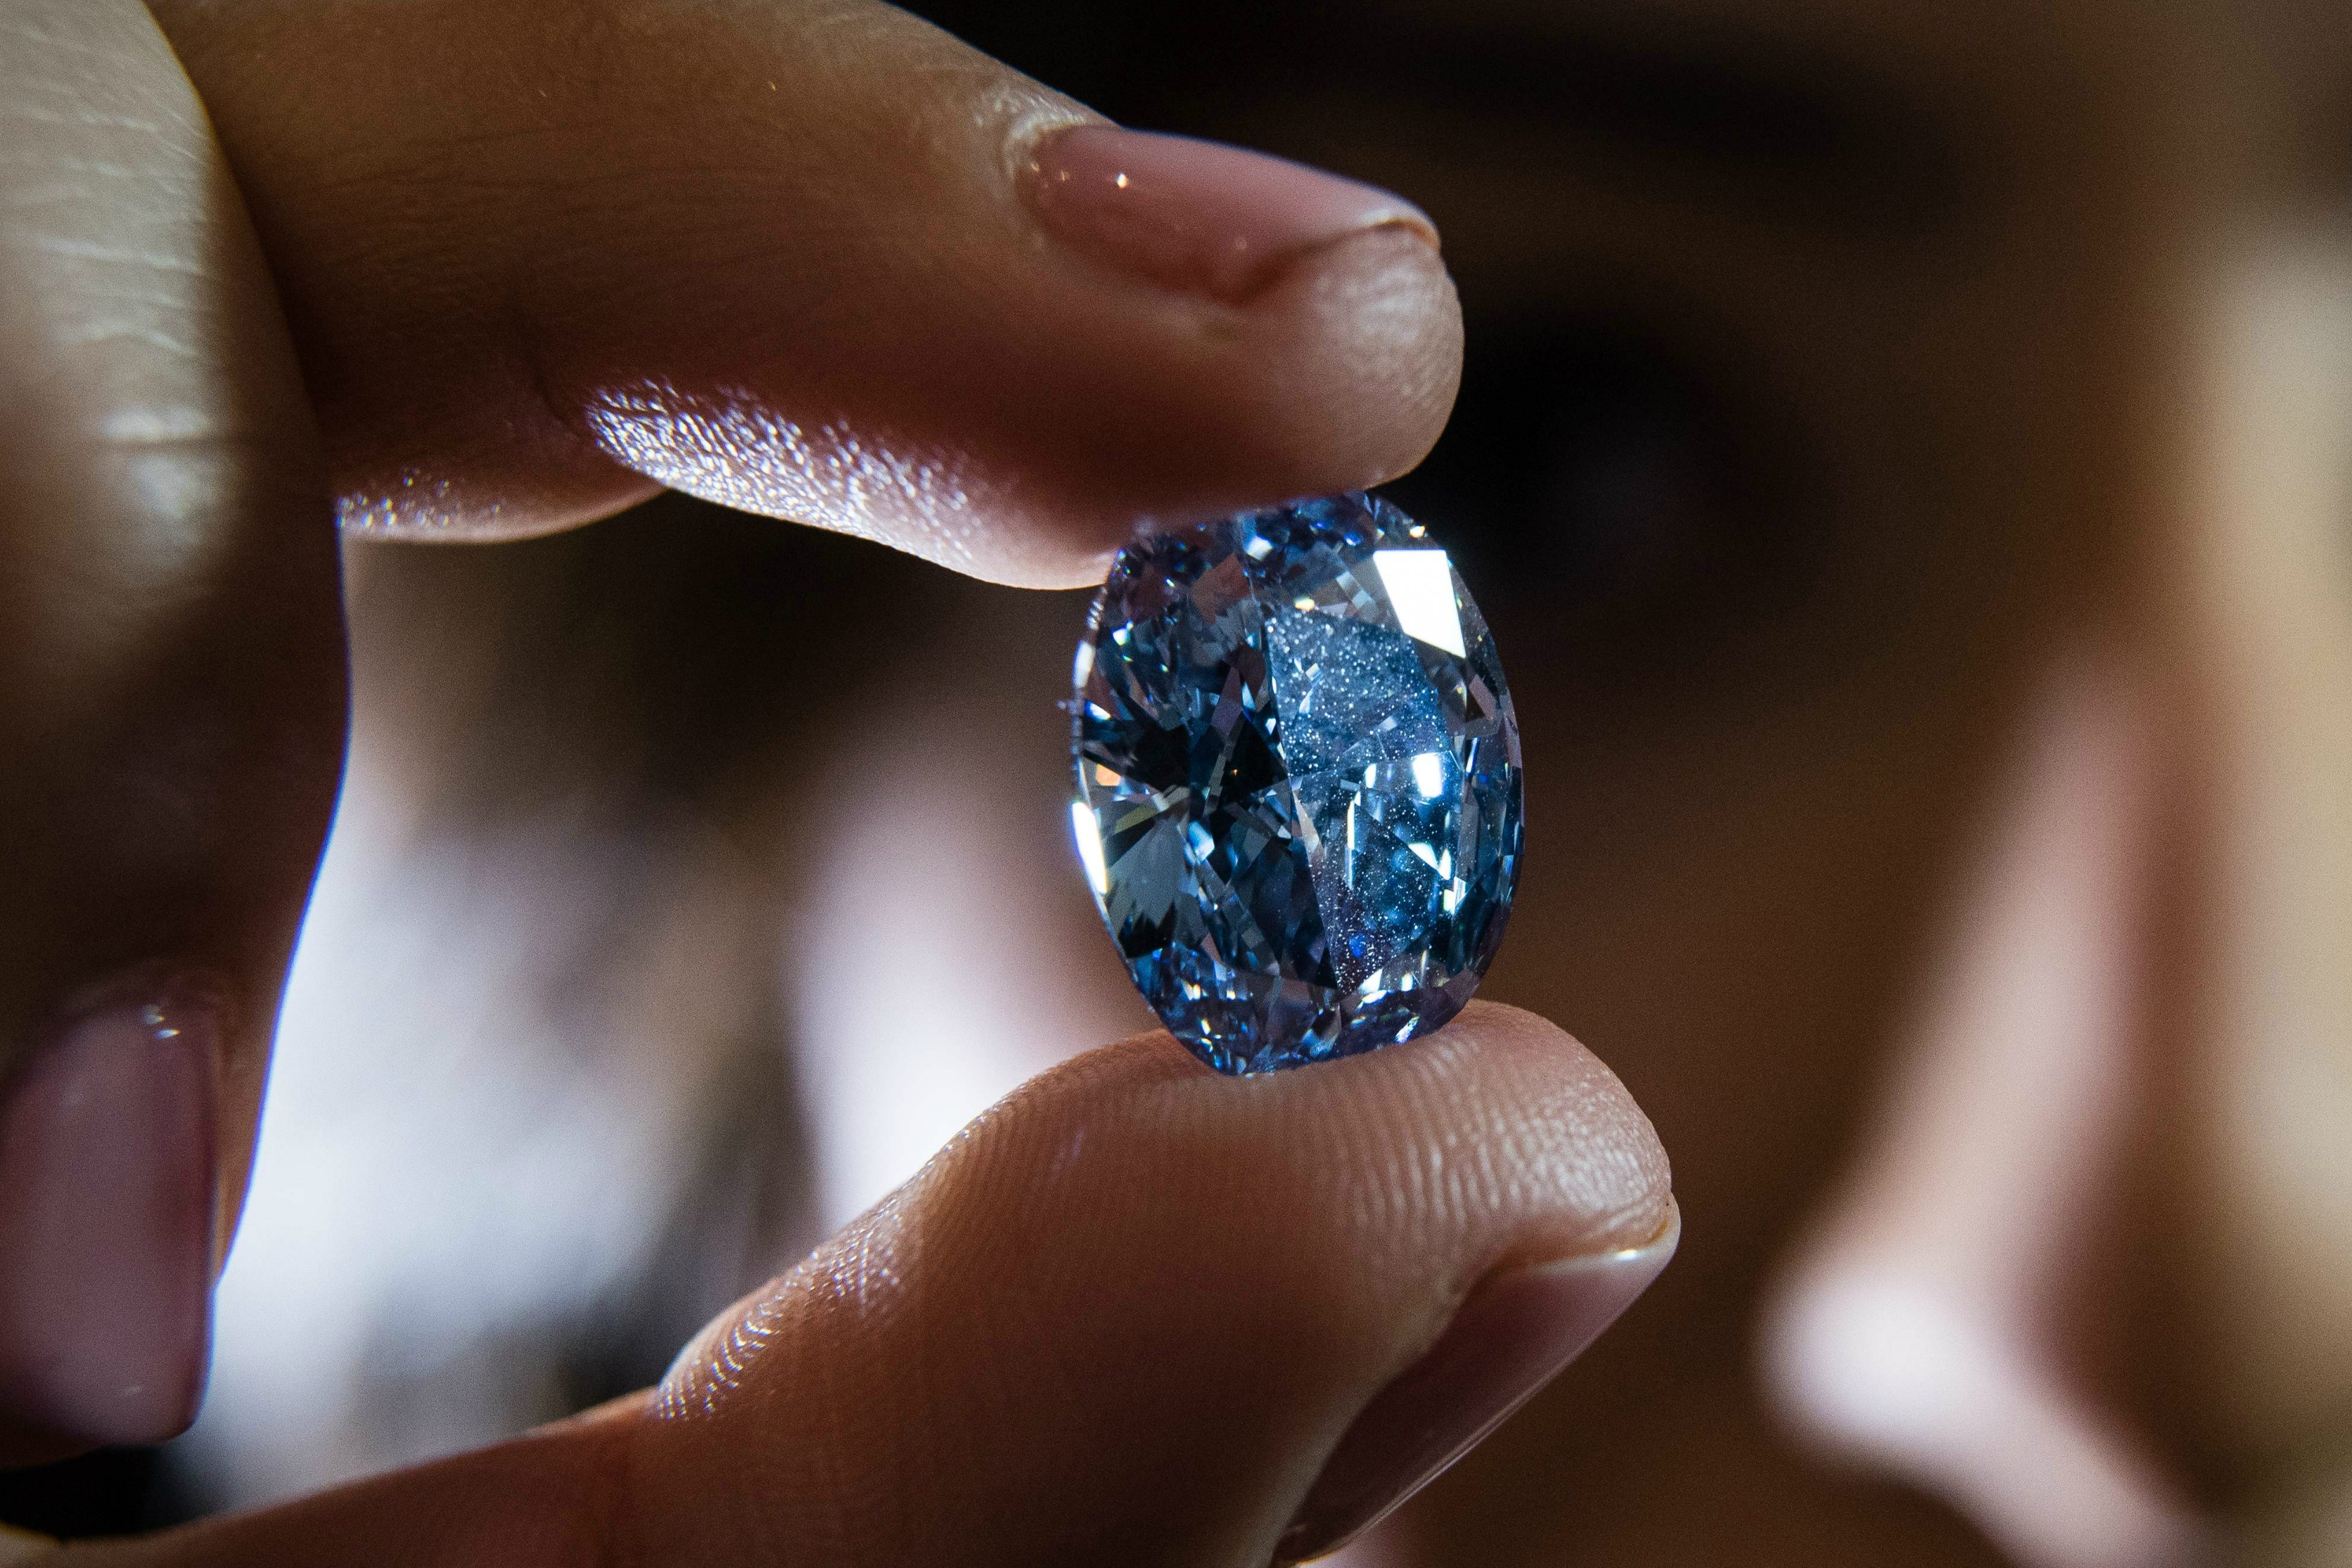 christies christie oriental diamond oppenheimer gain edge sunrise helps s the blue img